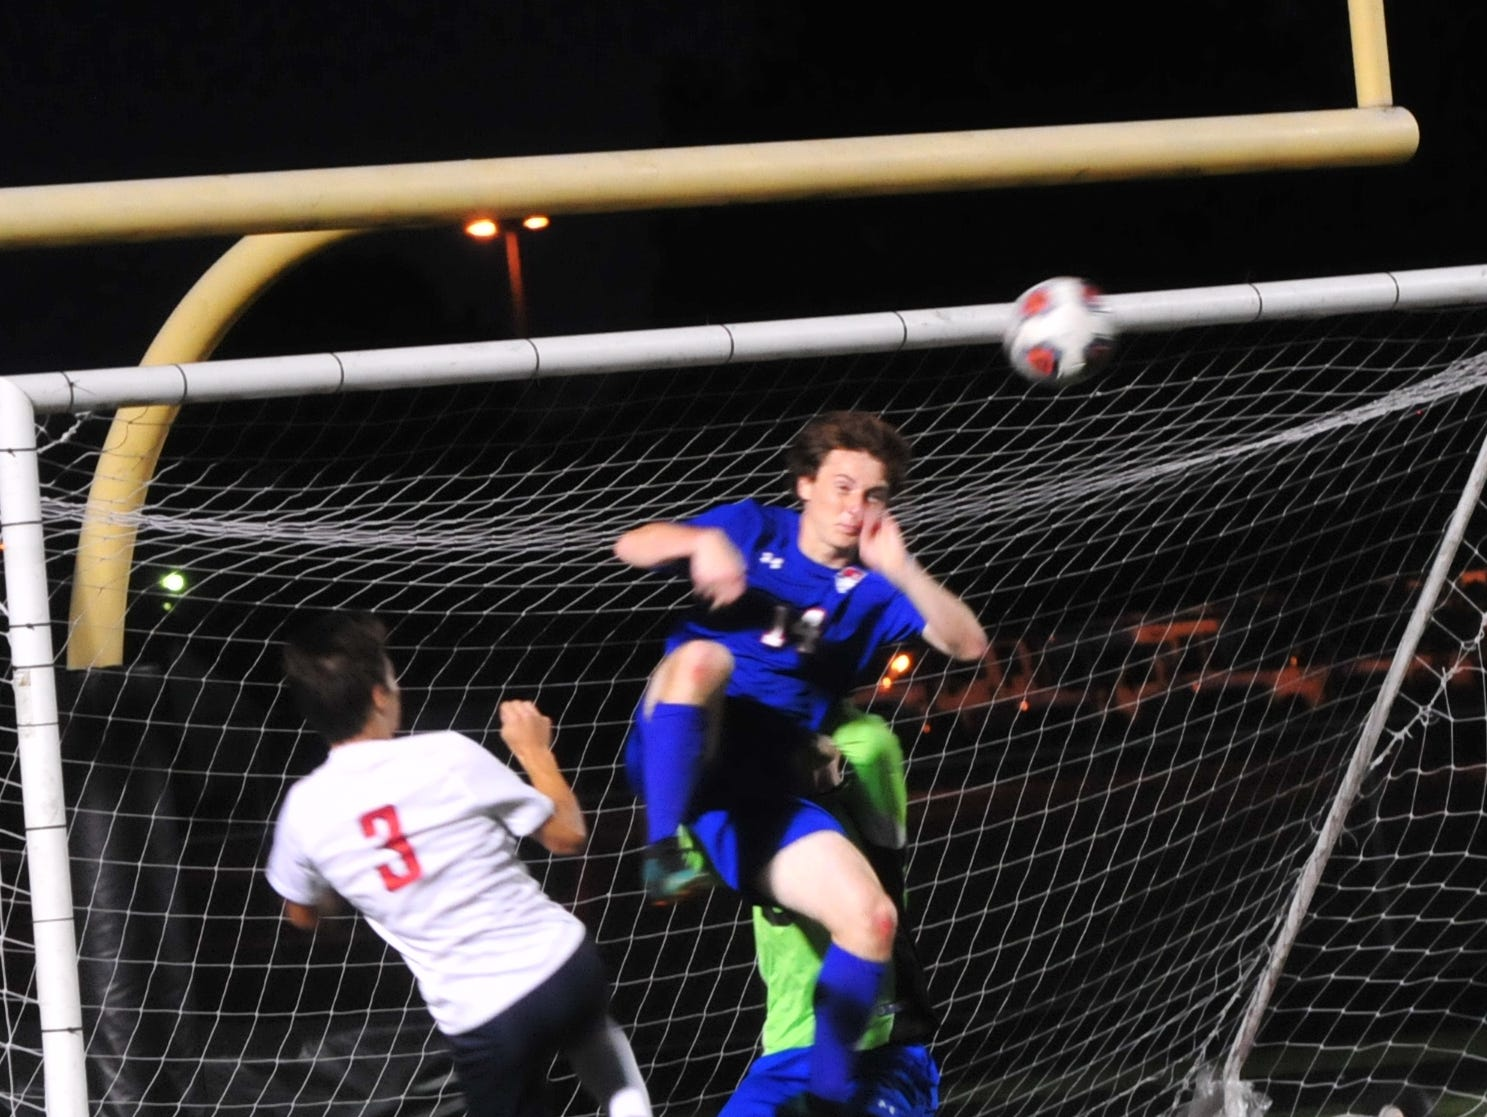 Union County's Dylan Dunaway (14) leaps to save a ball during the IHSAA Class A Sectional 42 boys soccer semifinal against Union County at Knightstown Wednesday, Oct. 3, 2018.